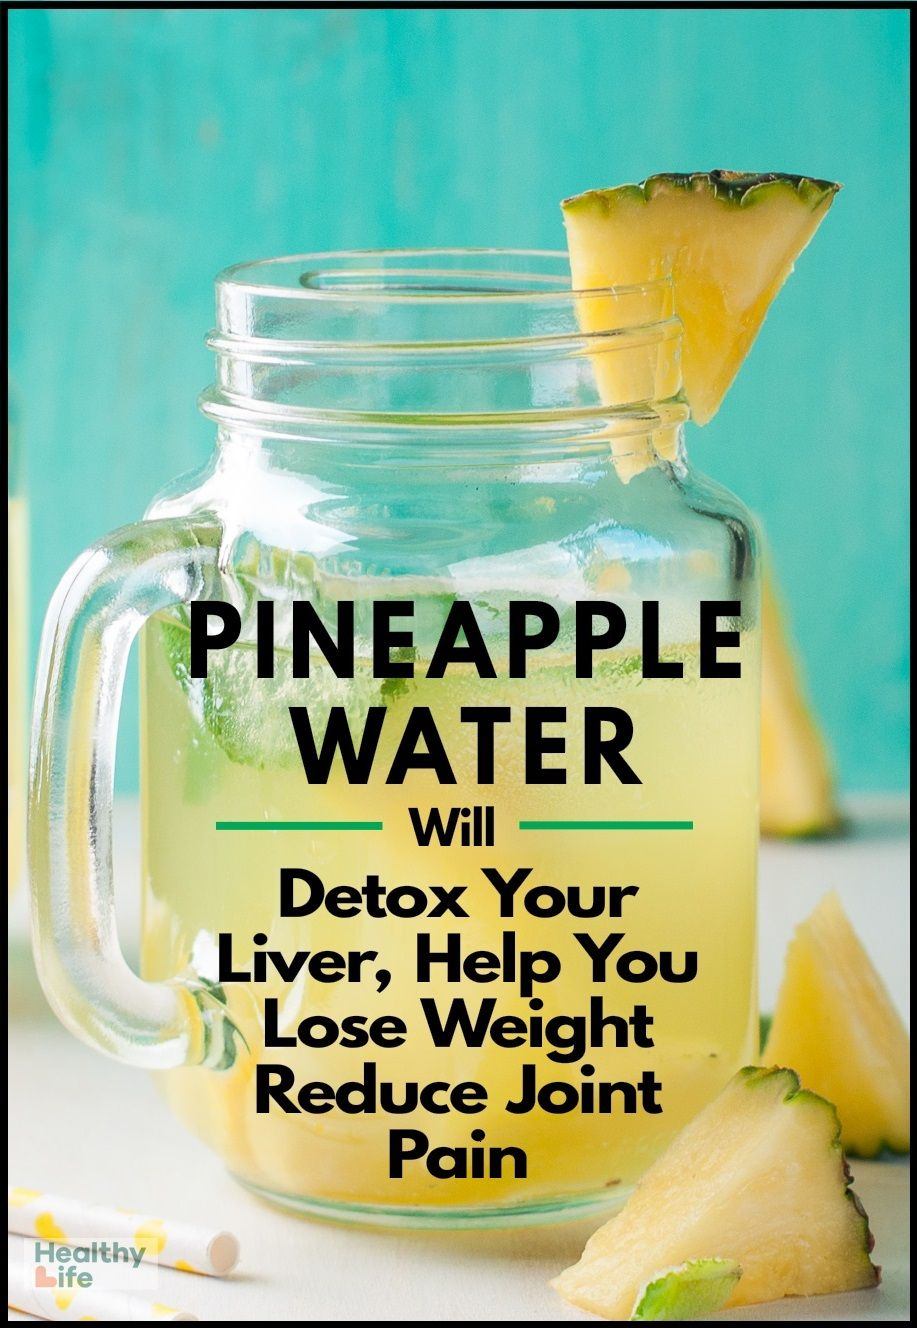 Pineapple Water Will Detox Your Liver, Help You Lose Weight, Reduce Joint Swelling And Pain